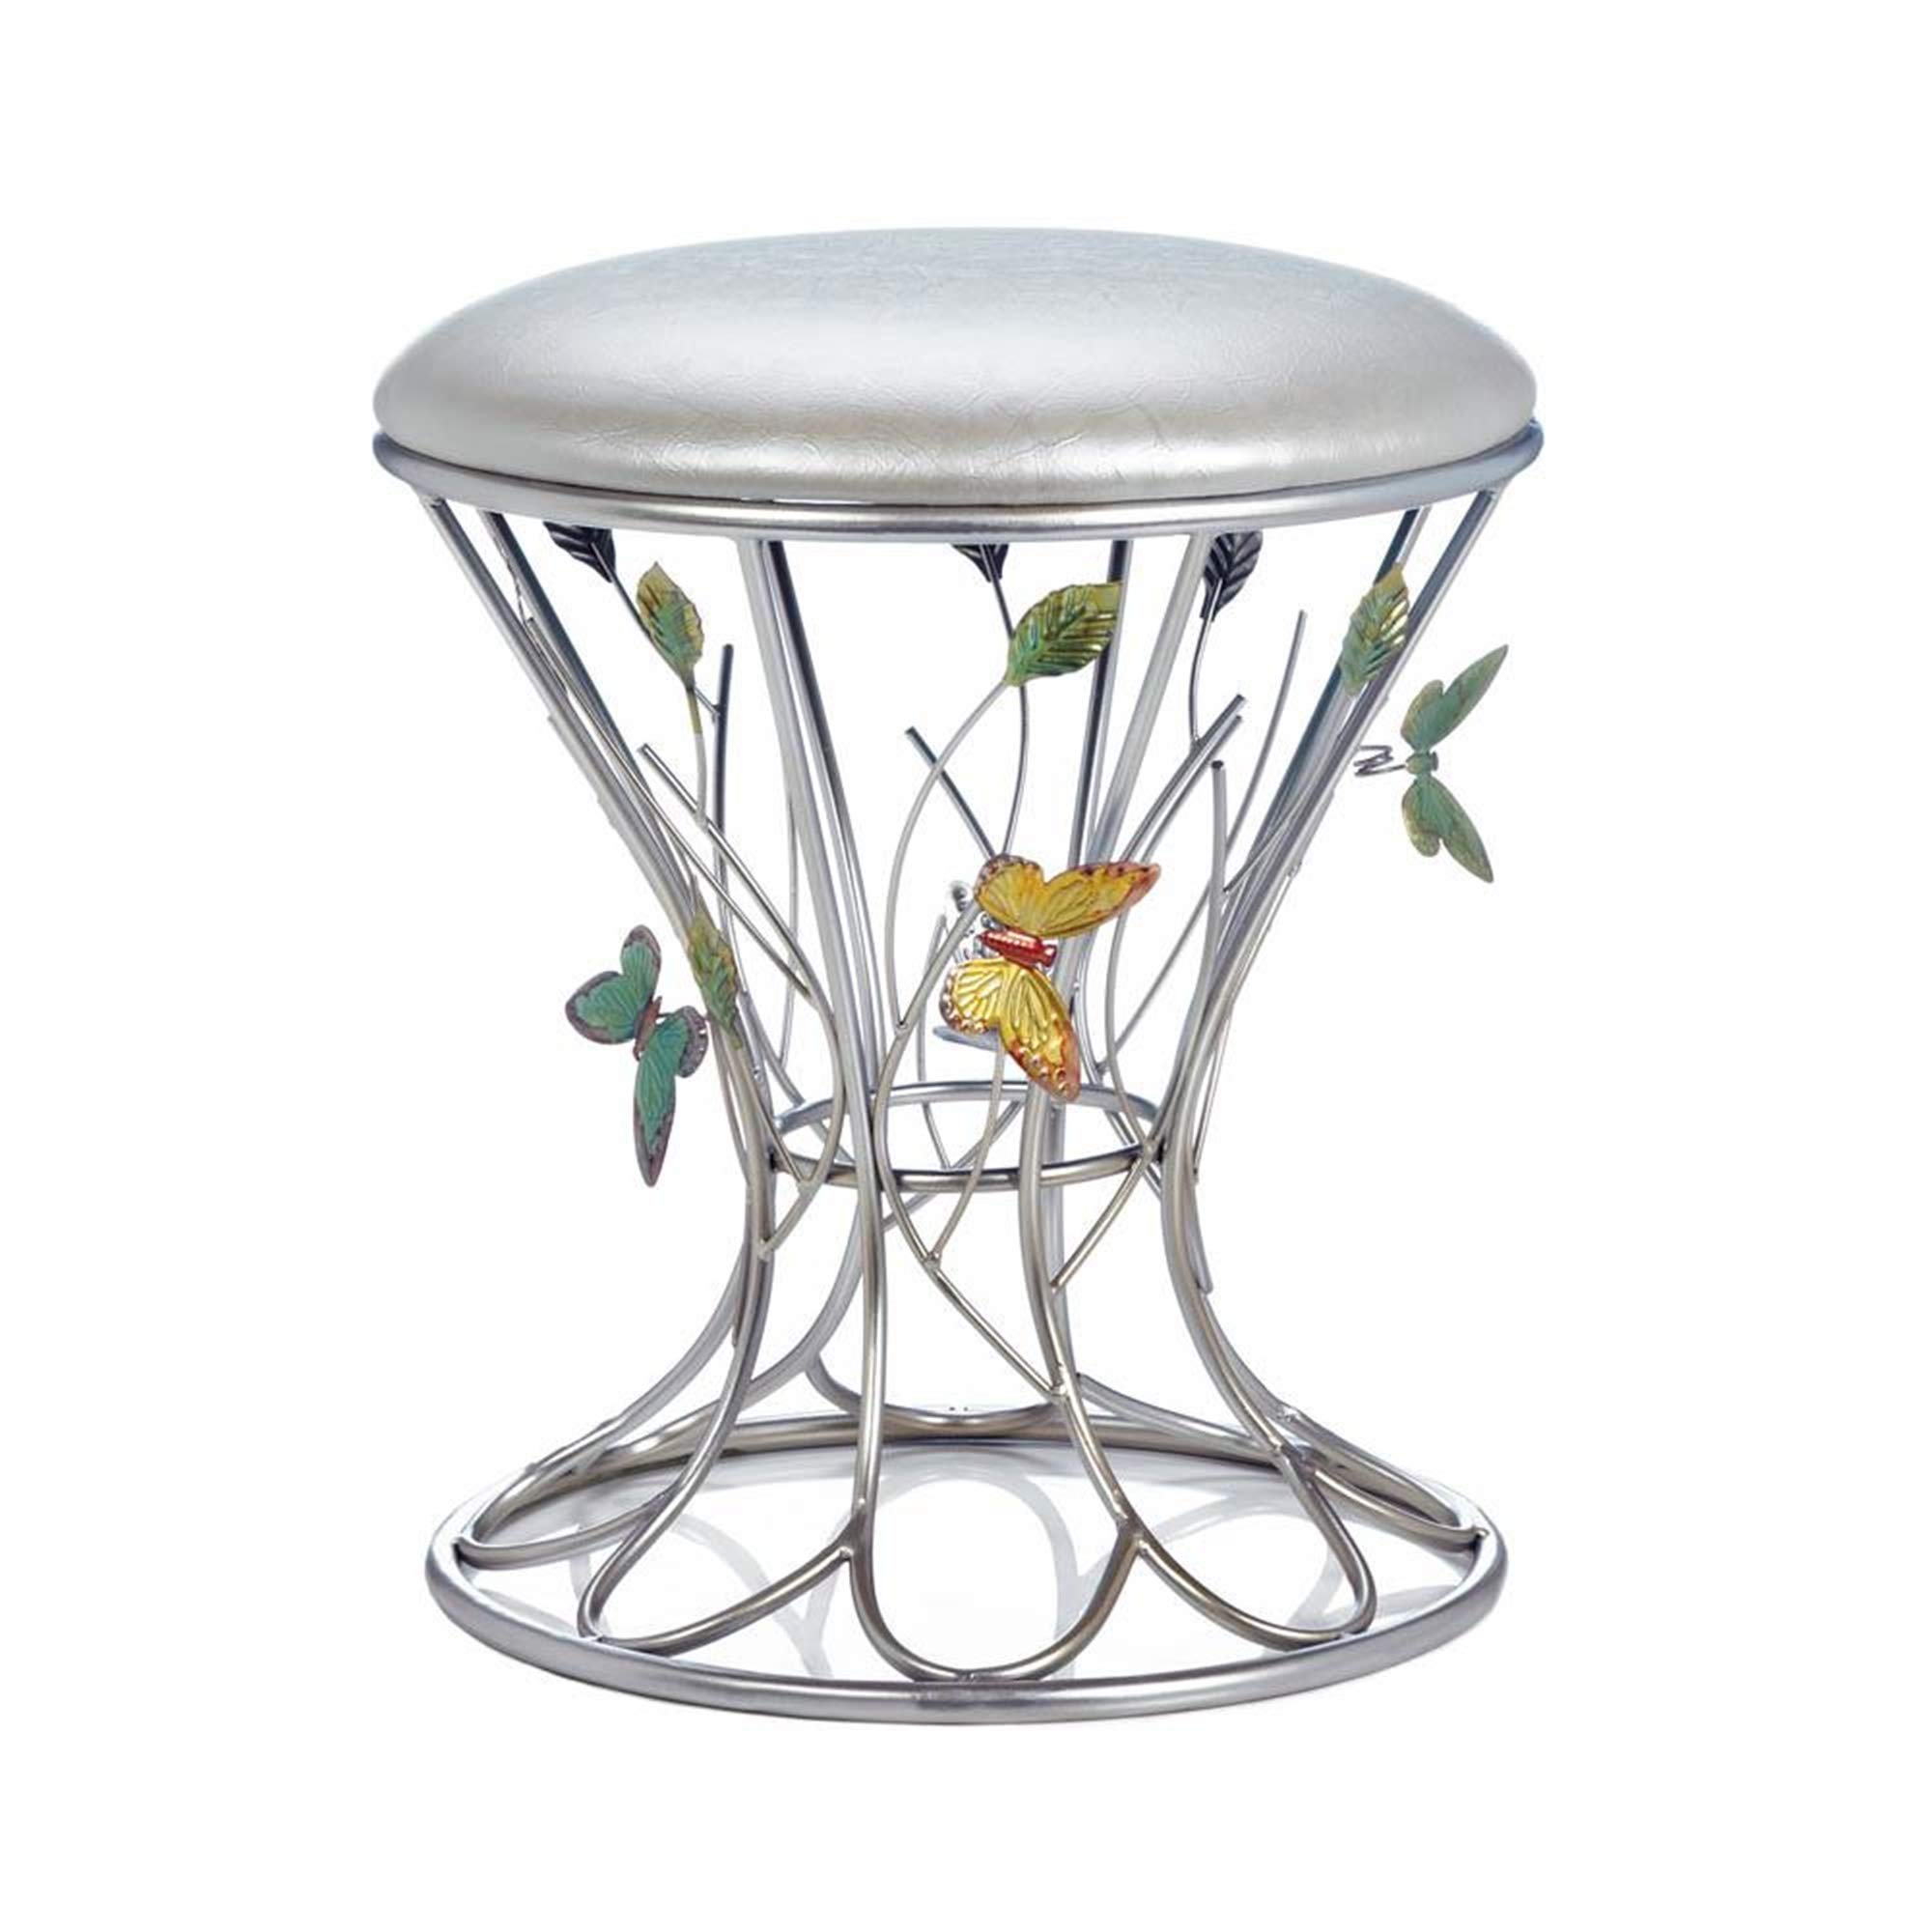 Butterfly Stool, Butterfly Bathroom Vanity Stool, Girls Makeup Table Chair, Metal Accent Stool with Butterflies Wings, Silver Accent Stools, Butterfly Themed Decor, Whimsical Bedroom Furniture by Butterfly Lover Gifts